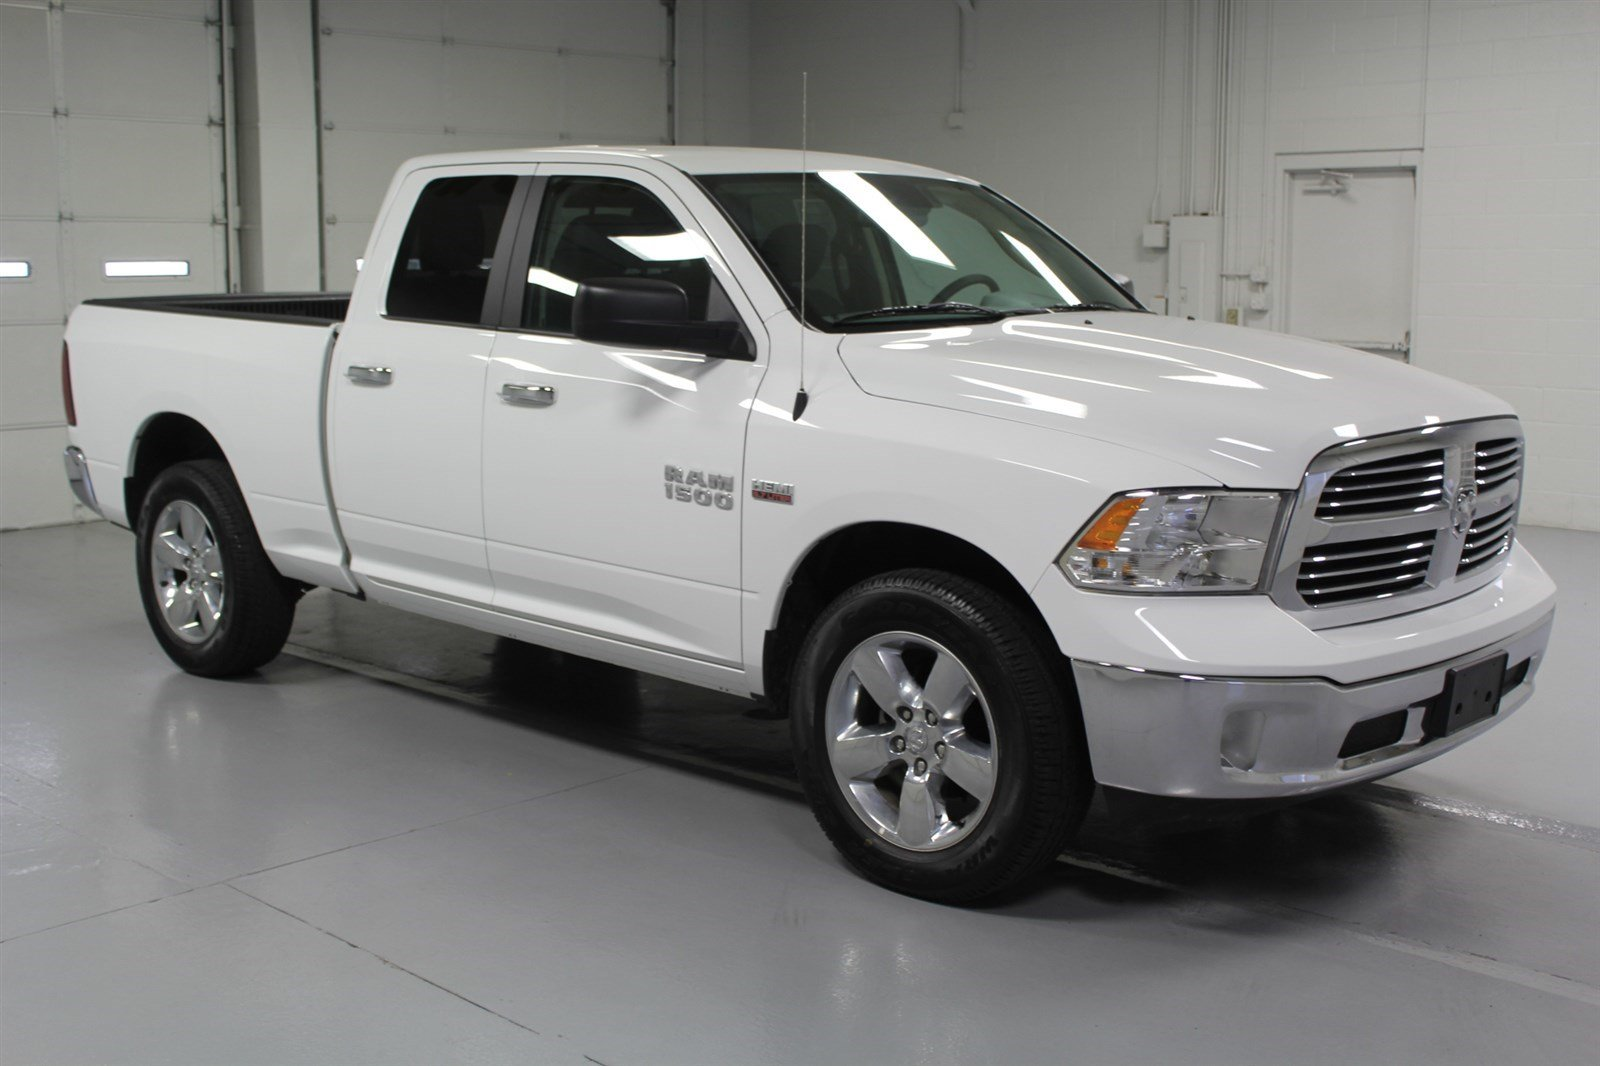 pre owned 2015 dodge ram 1500 quad cab slt 4x4 crew cab pickup in wichita u560921 super car guys. Black Bedroom Furniture Sets. Home Design Ideas